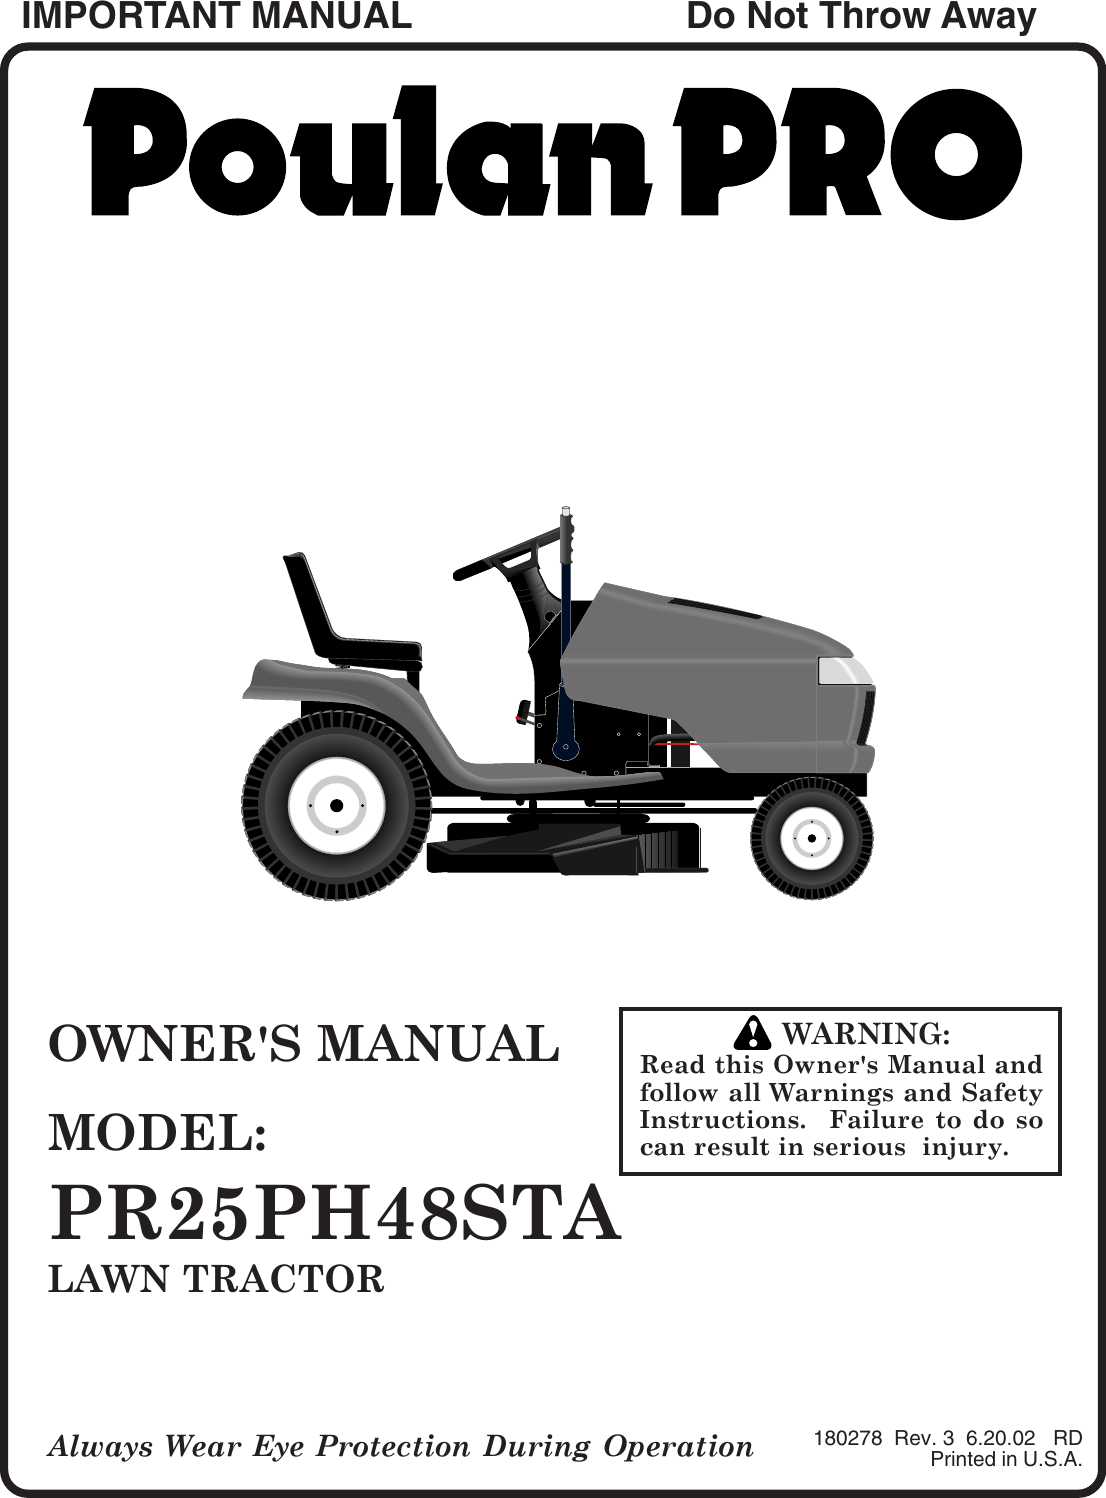 Poulan Pr25Ph48Sta 2002 06 Owners Manual OM, PR25PH48STA